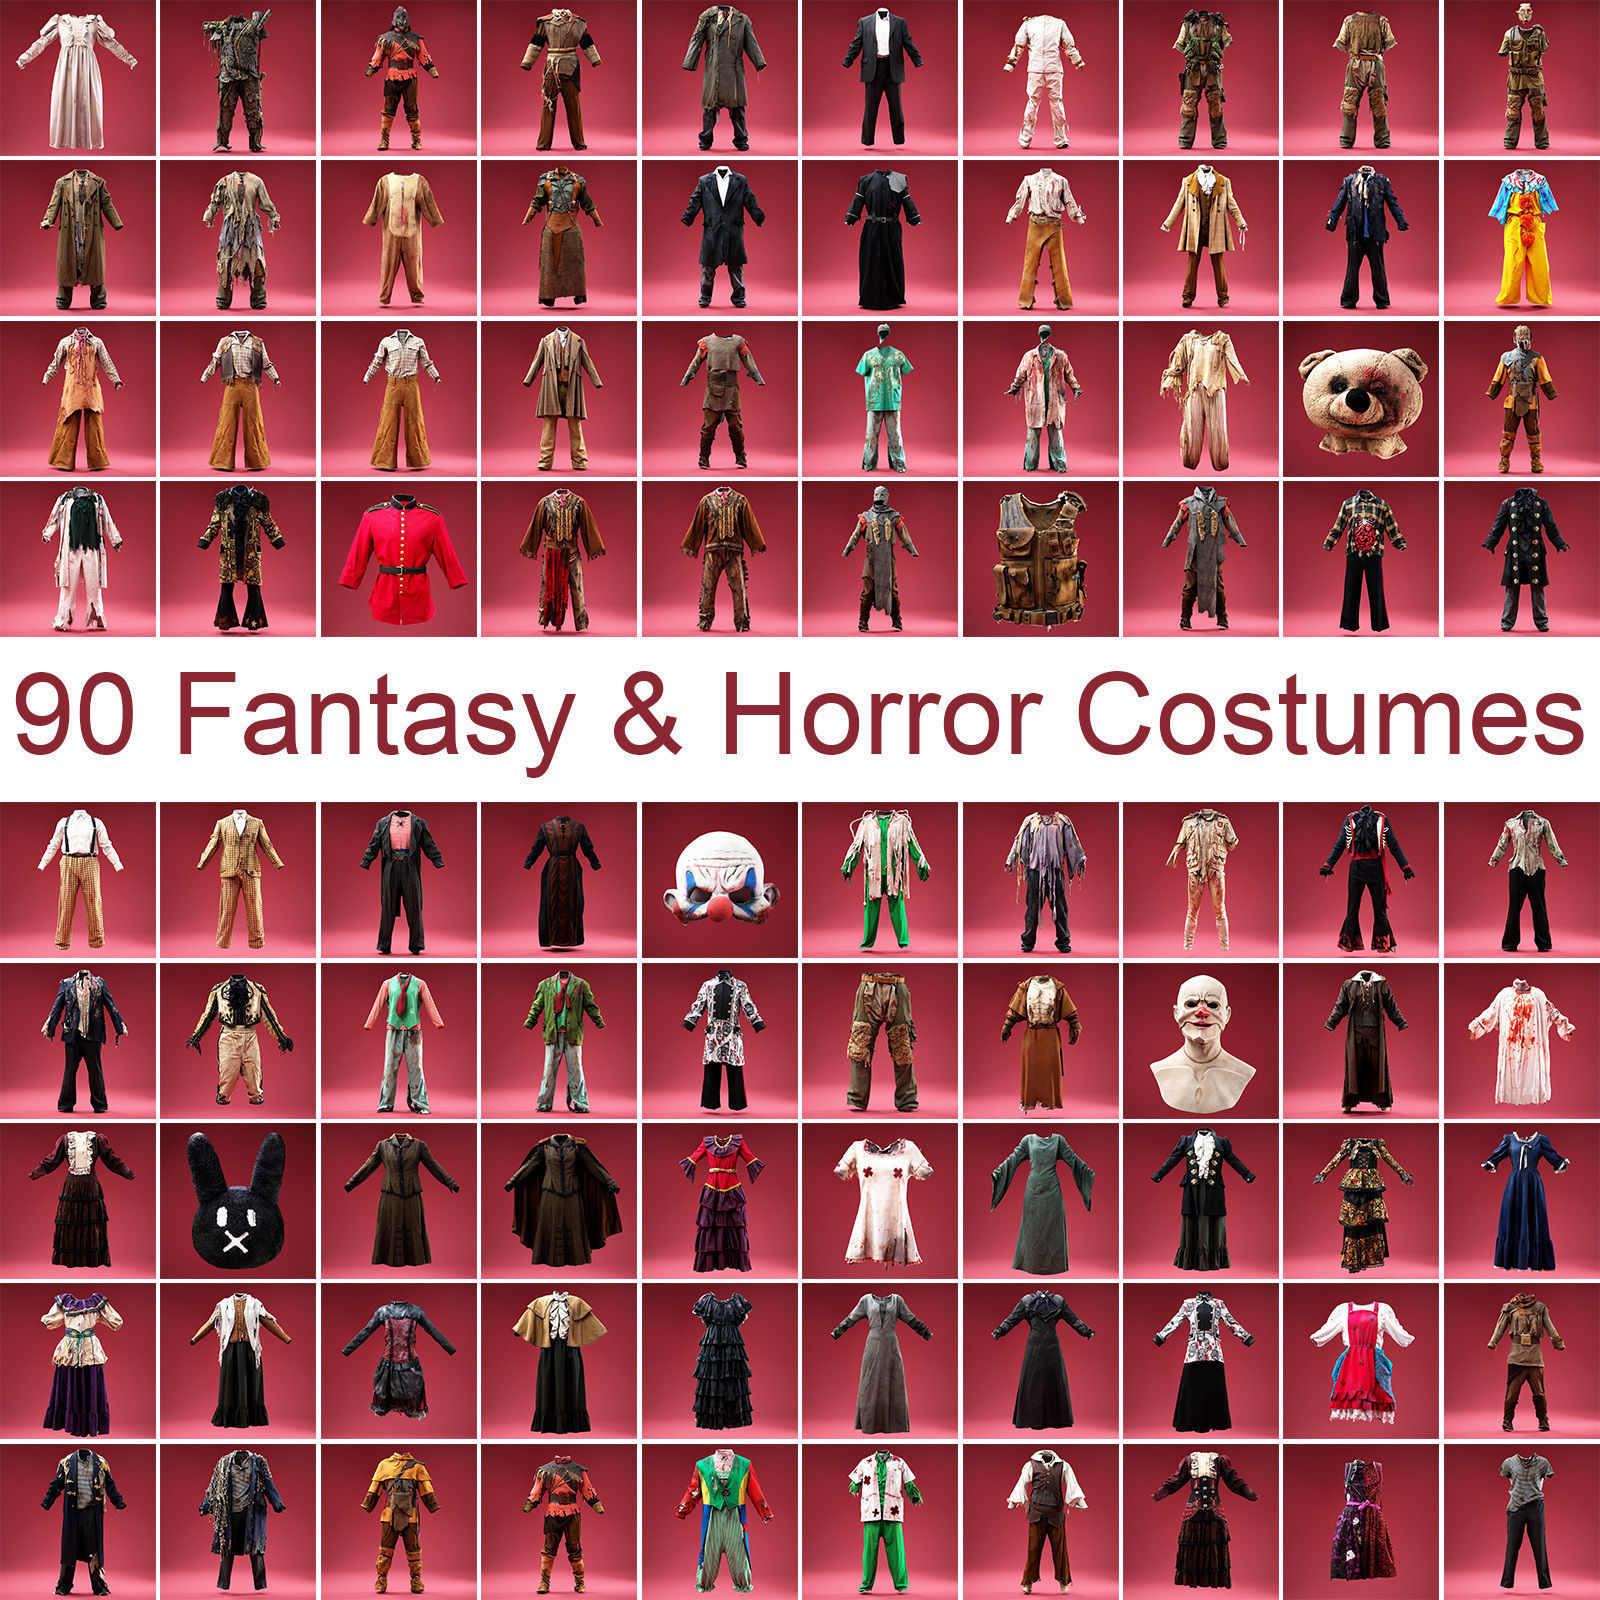 90 Fantasy and Horror Costumes